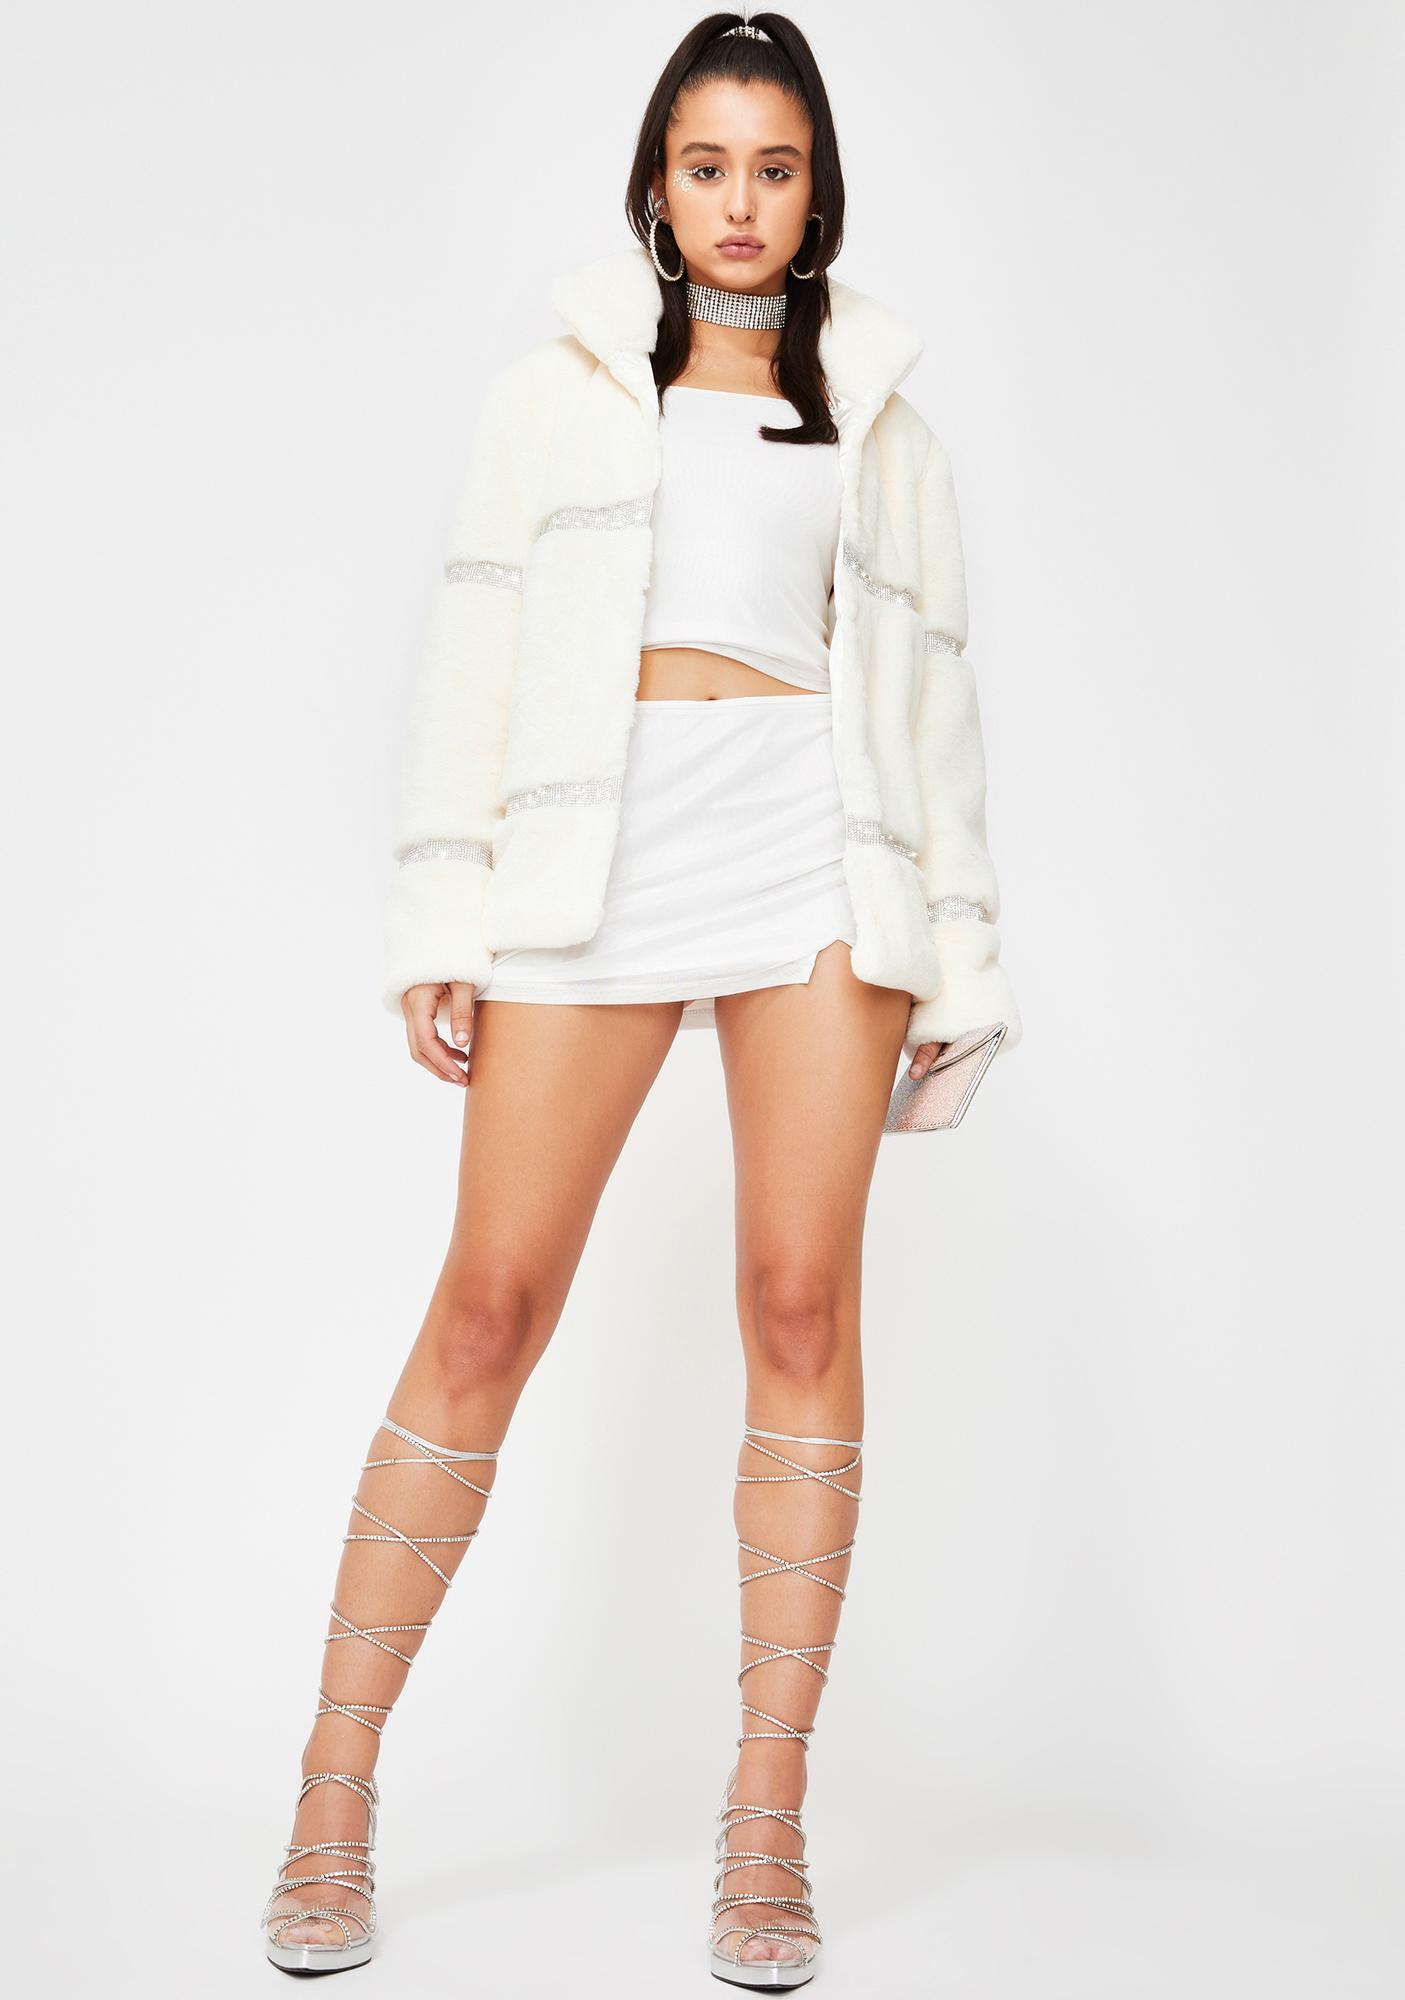 Poster Grl Humble But Hungry Rhinestone Jacket